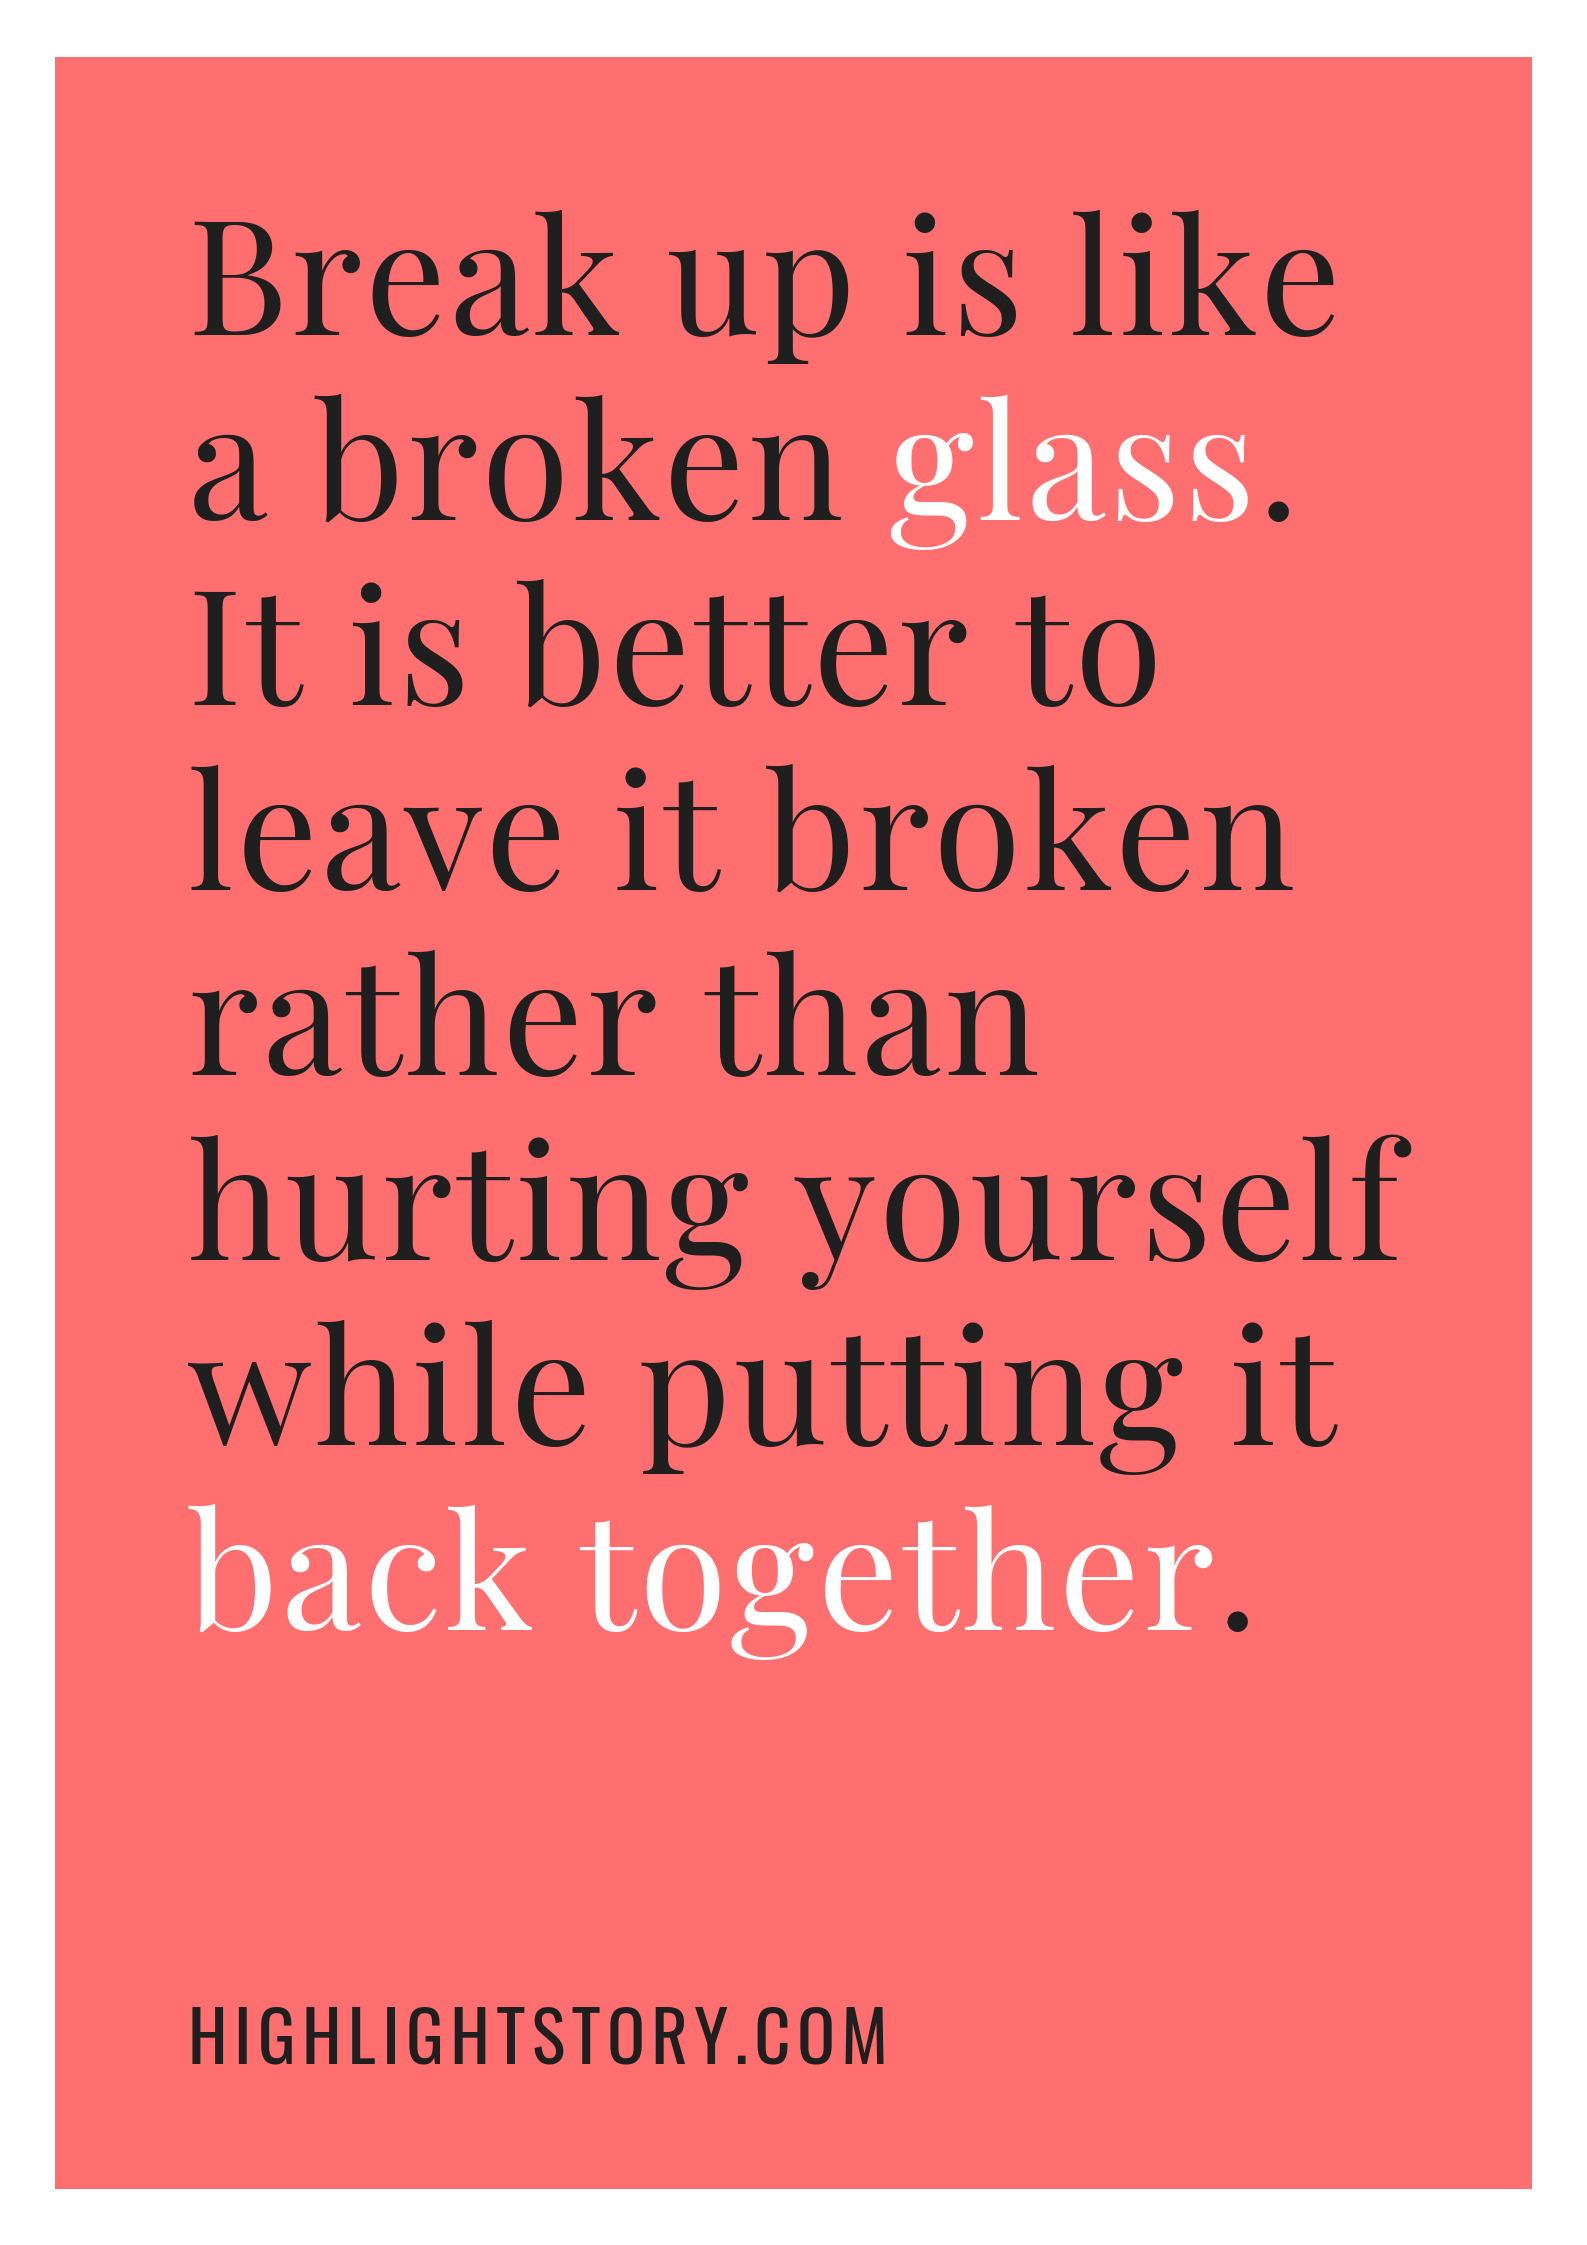 Break up is like a broken glass. It is better to leave it broken rather than hurting yourself while putting it back together.